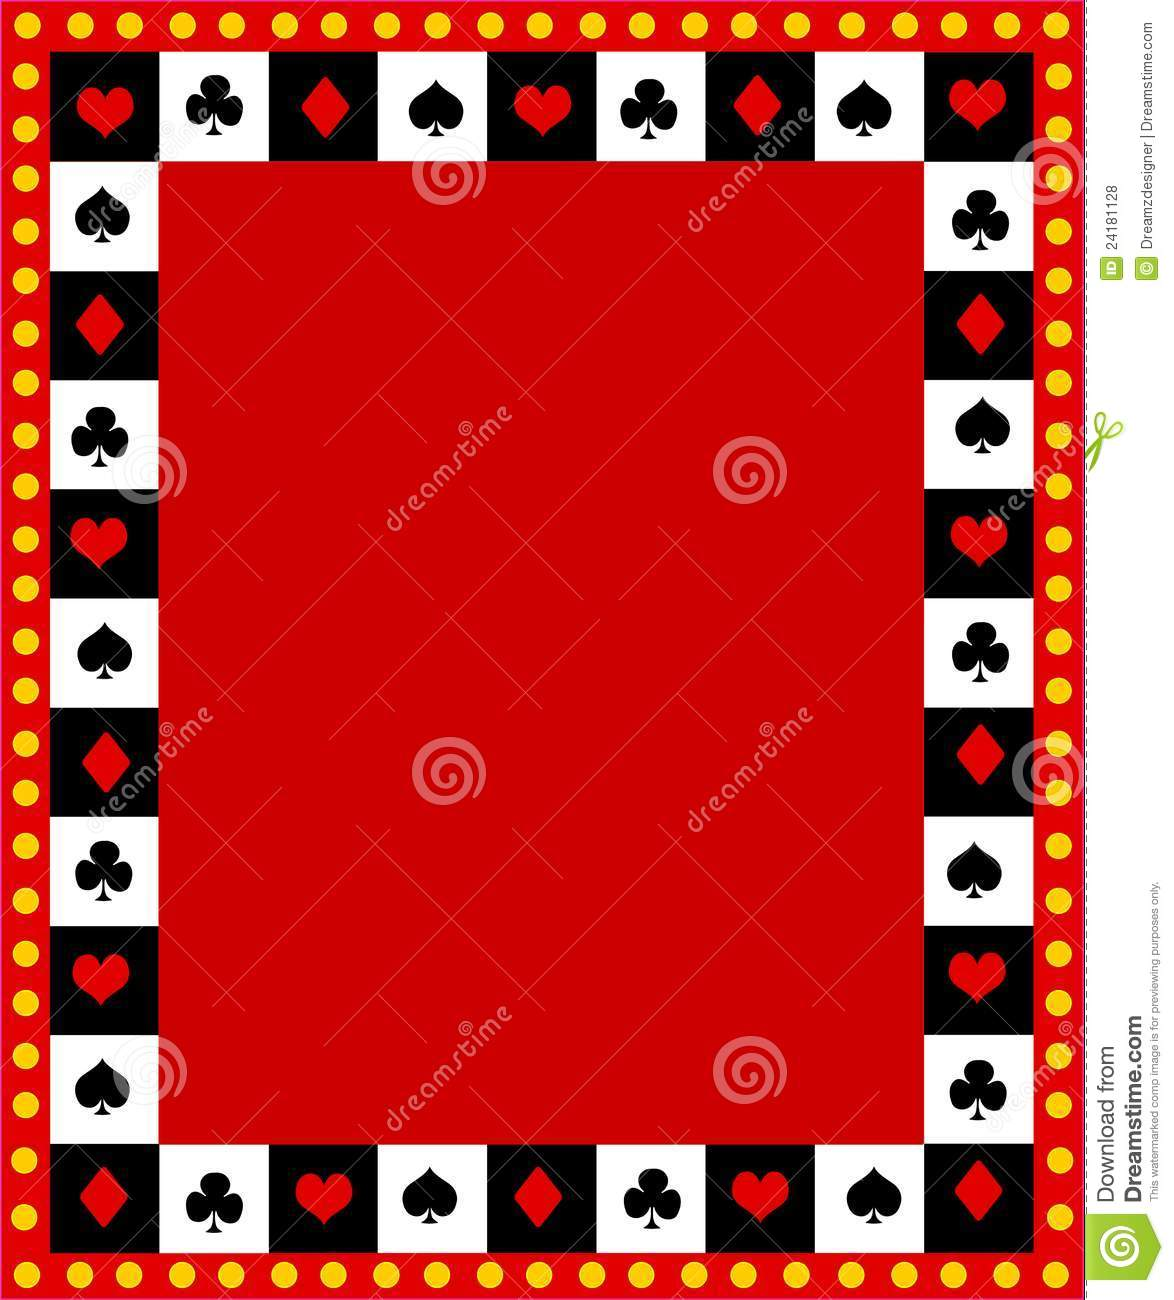 Playing Cards Clipart Border Poker Playing Cards Border